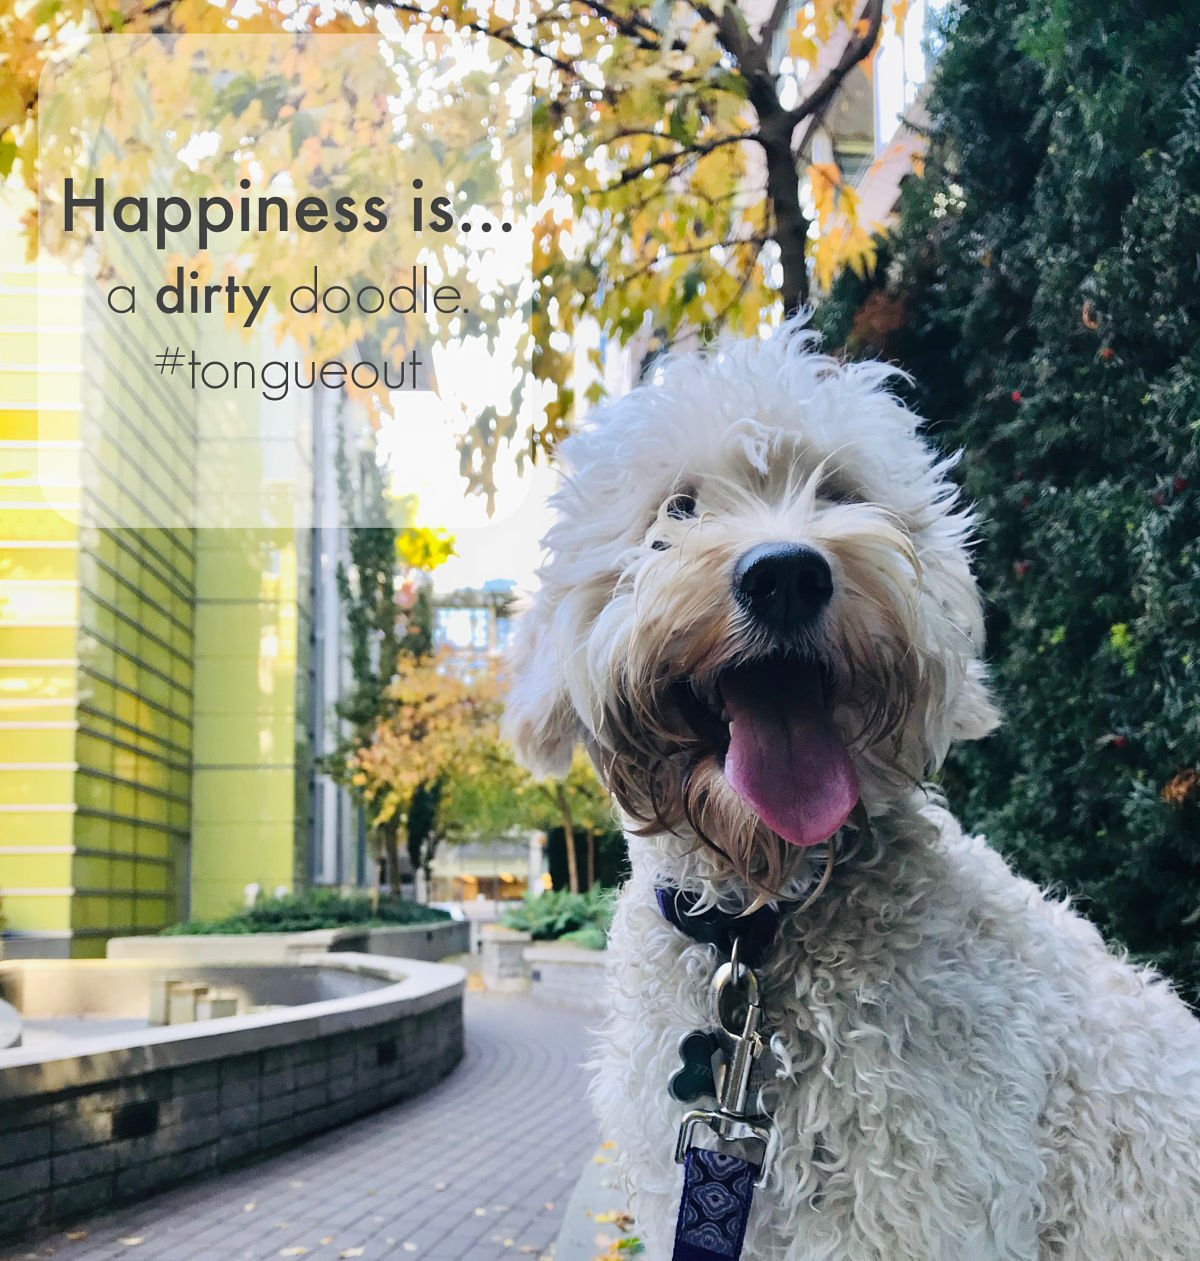 happiness-doodle-pup